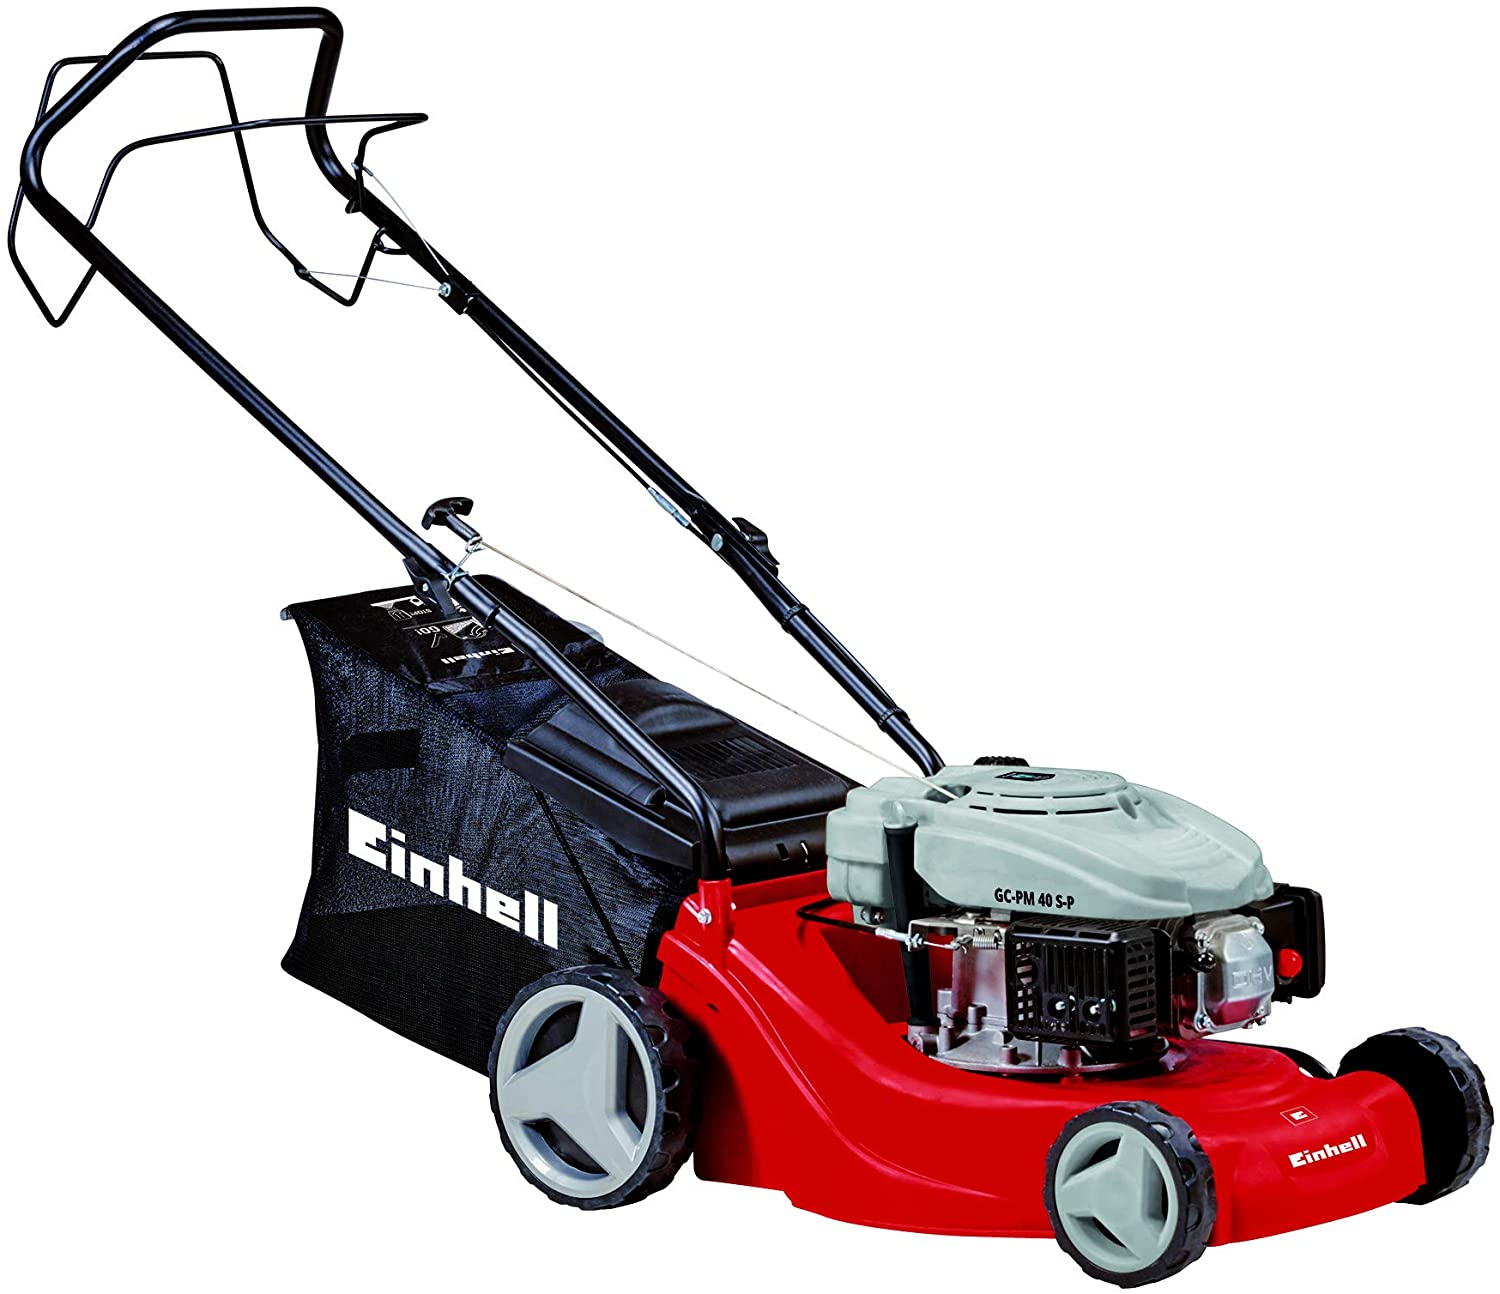 Einhell Petrol Lawnmower